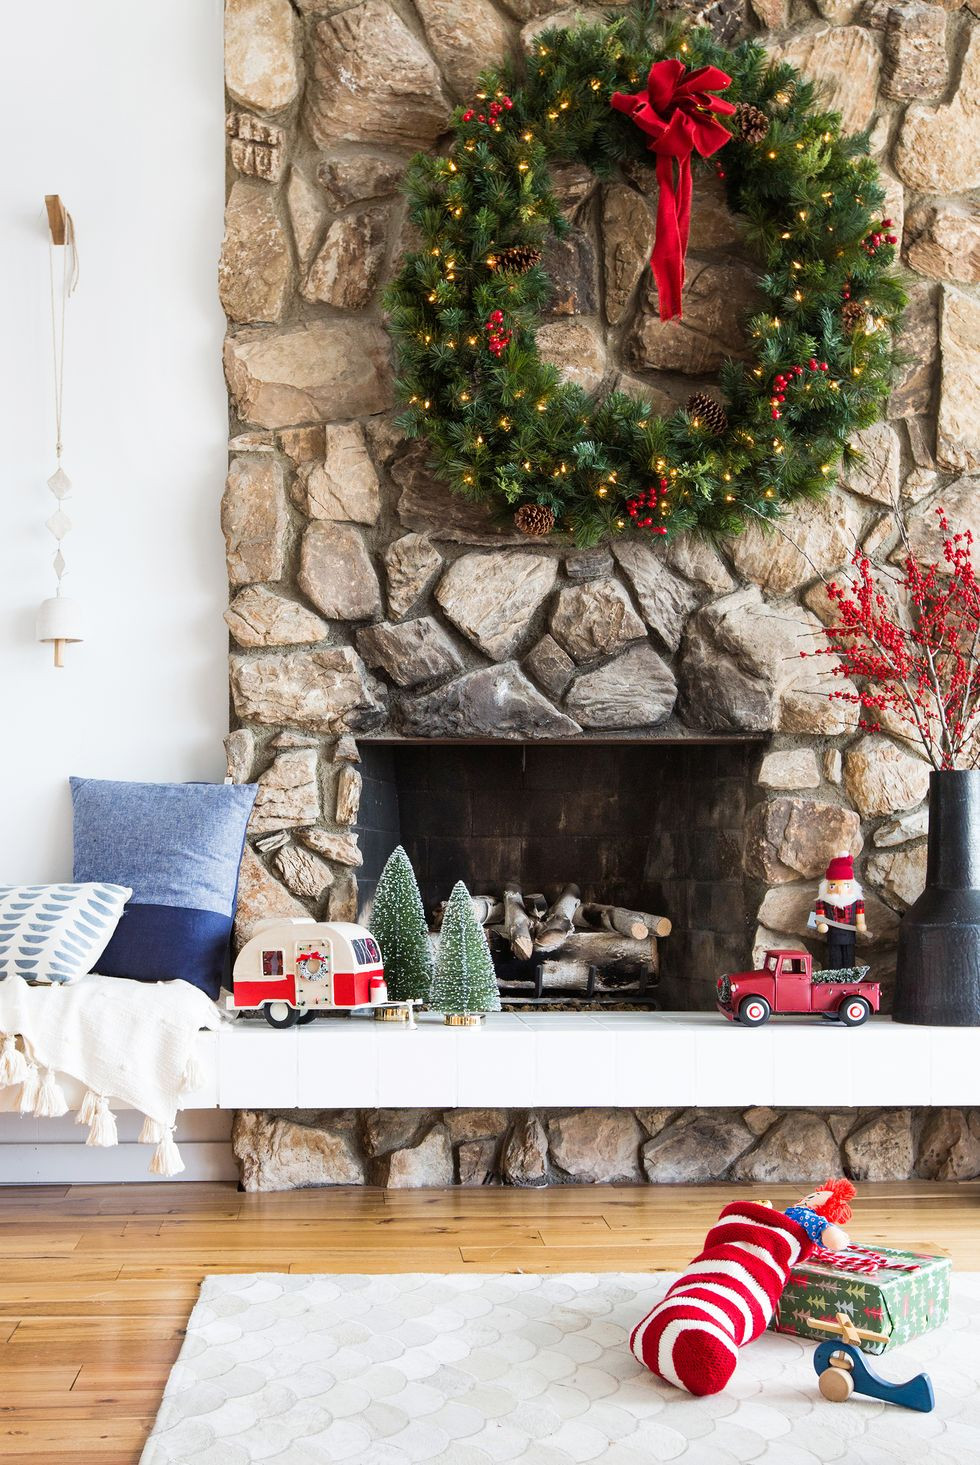 A traditional stone Christmas holiday fireplace decorated with a green wreath, miniature cars and bottle brush trees for a stylish and cozy feel.